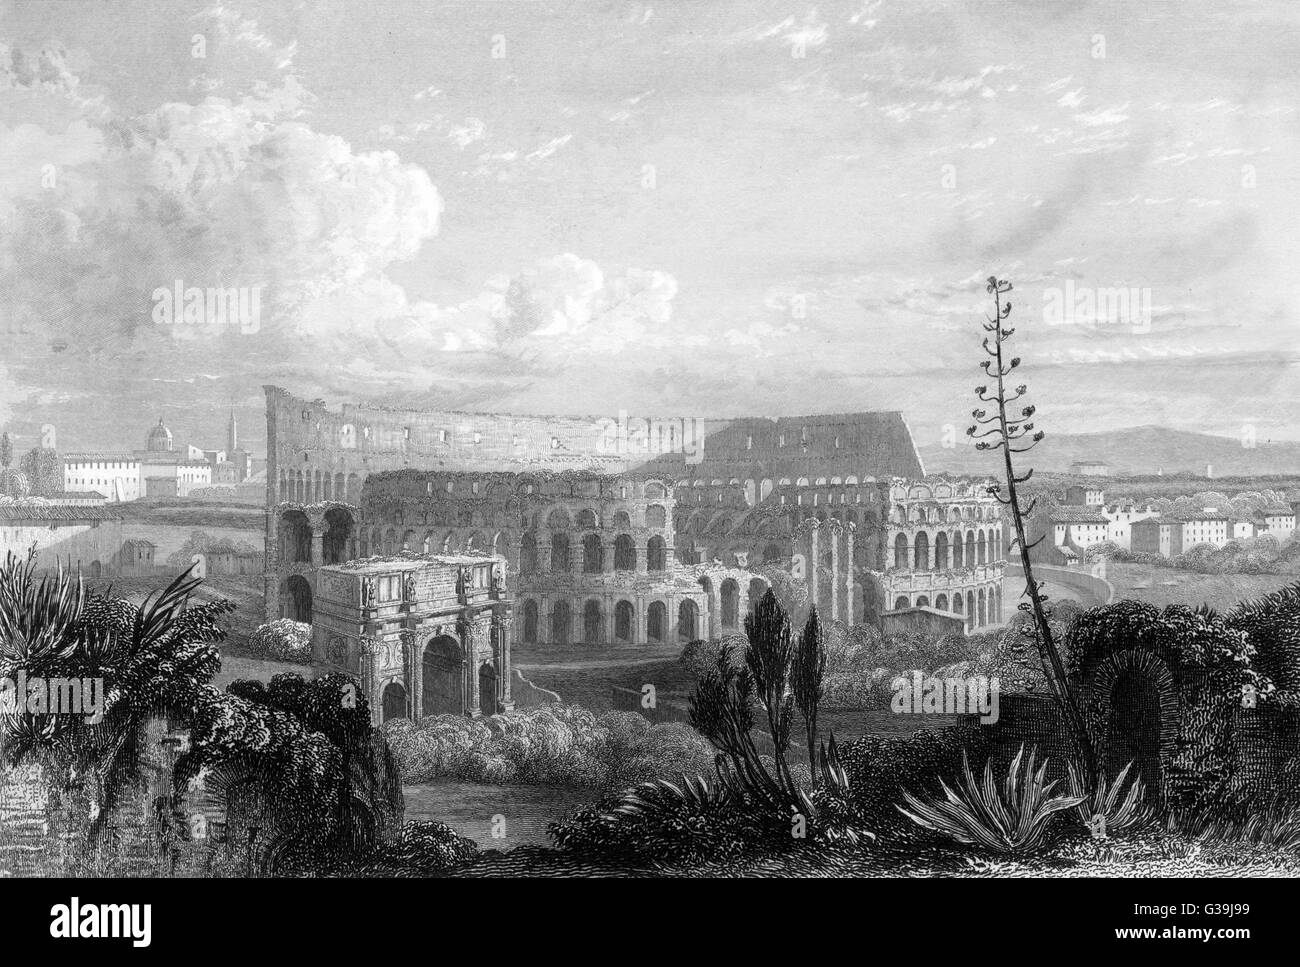 view from the Palace  of the Caesars         Date: circa 1840 - Stock Image